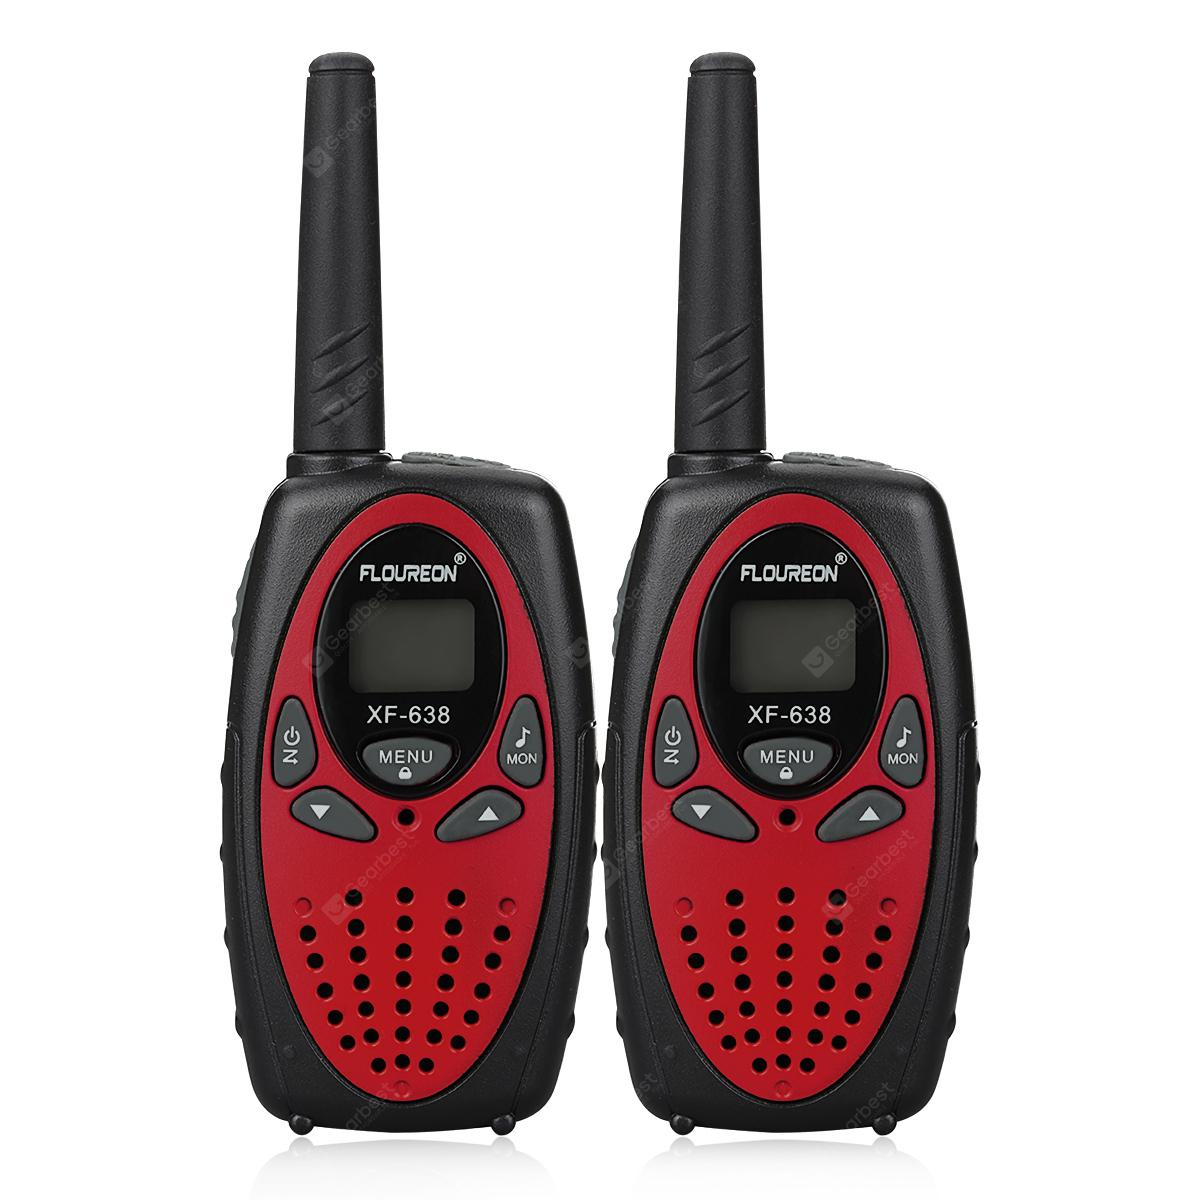 FLOUREON XF - 638 8 Channel Twin PMR446MHZ 2 - way Radio 3KM Range Interphone Walkie Talkies